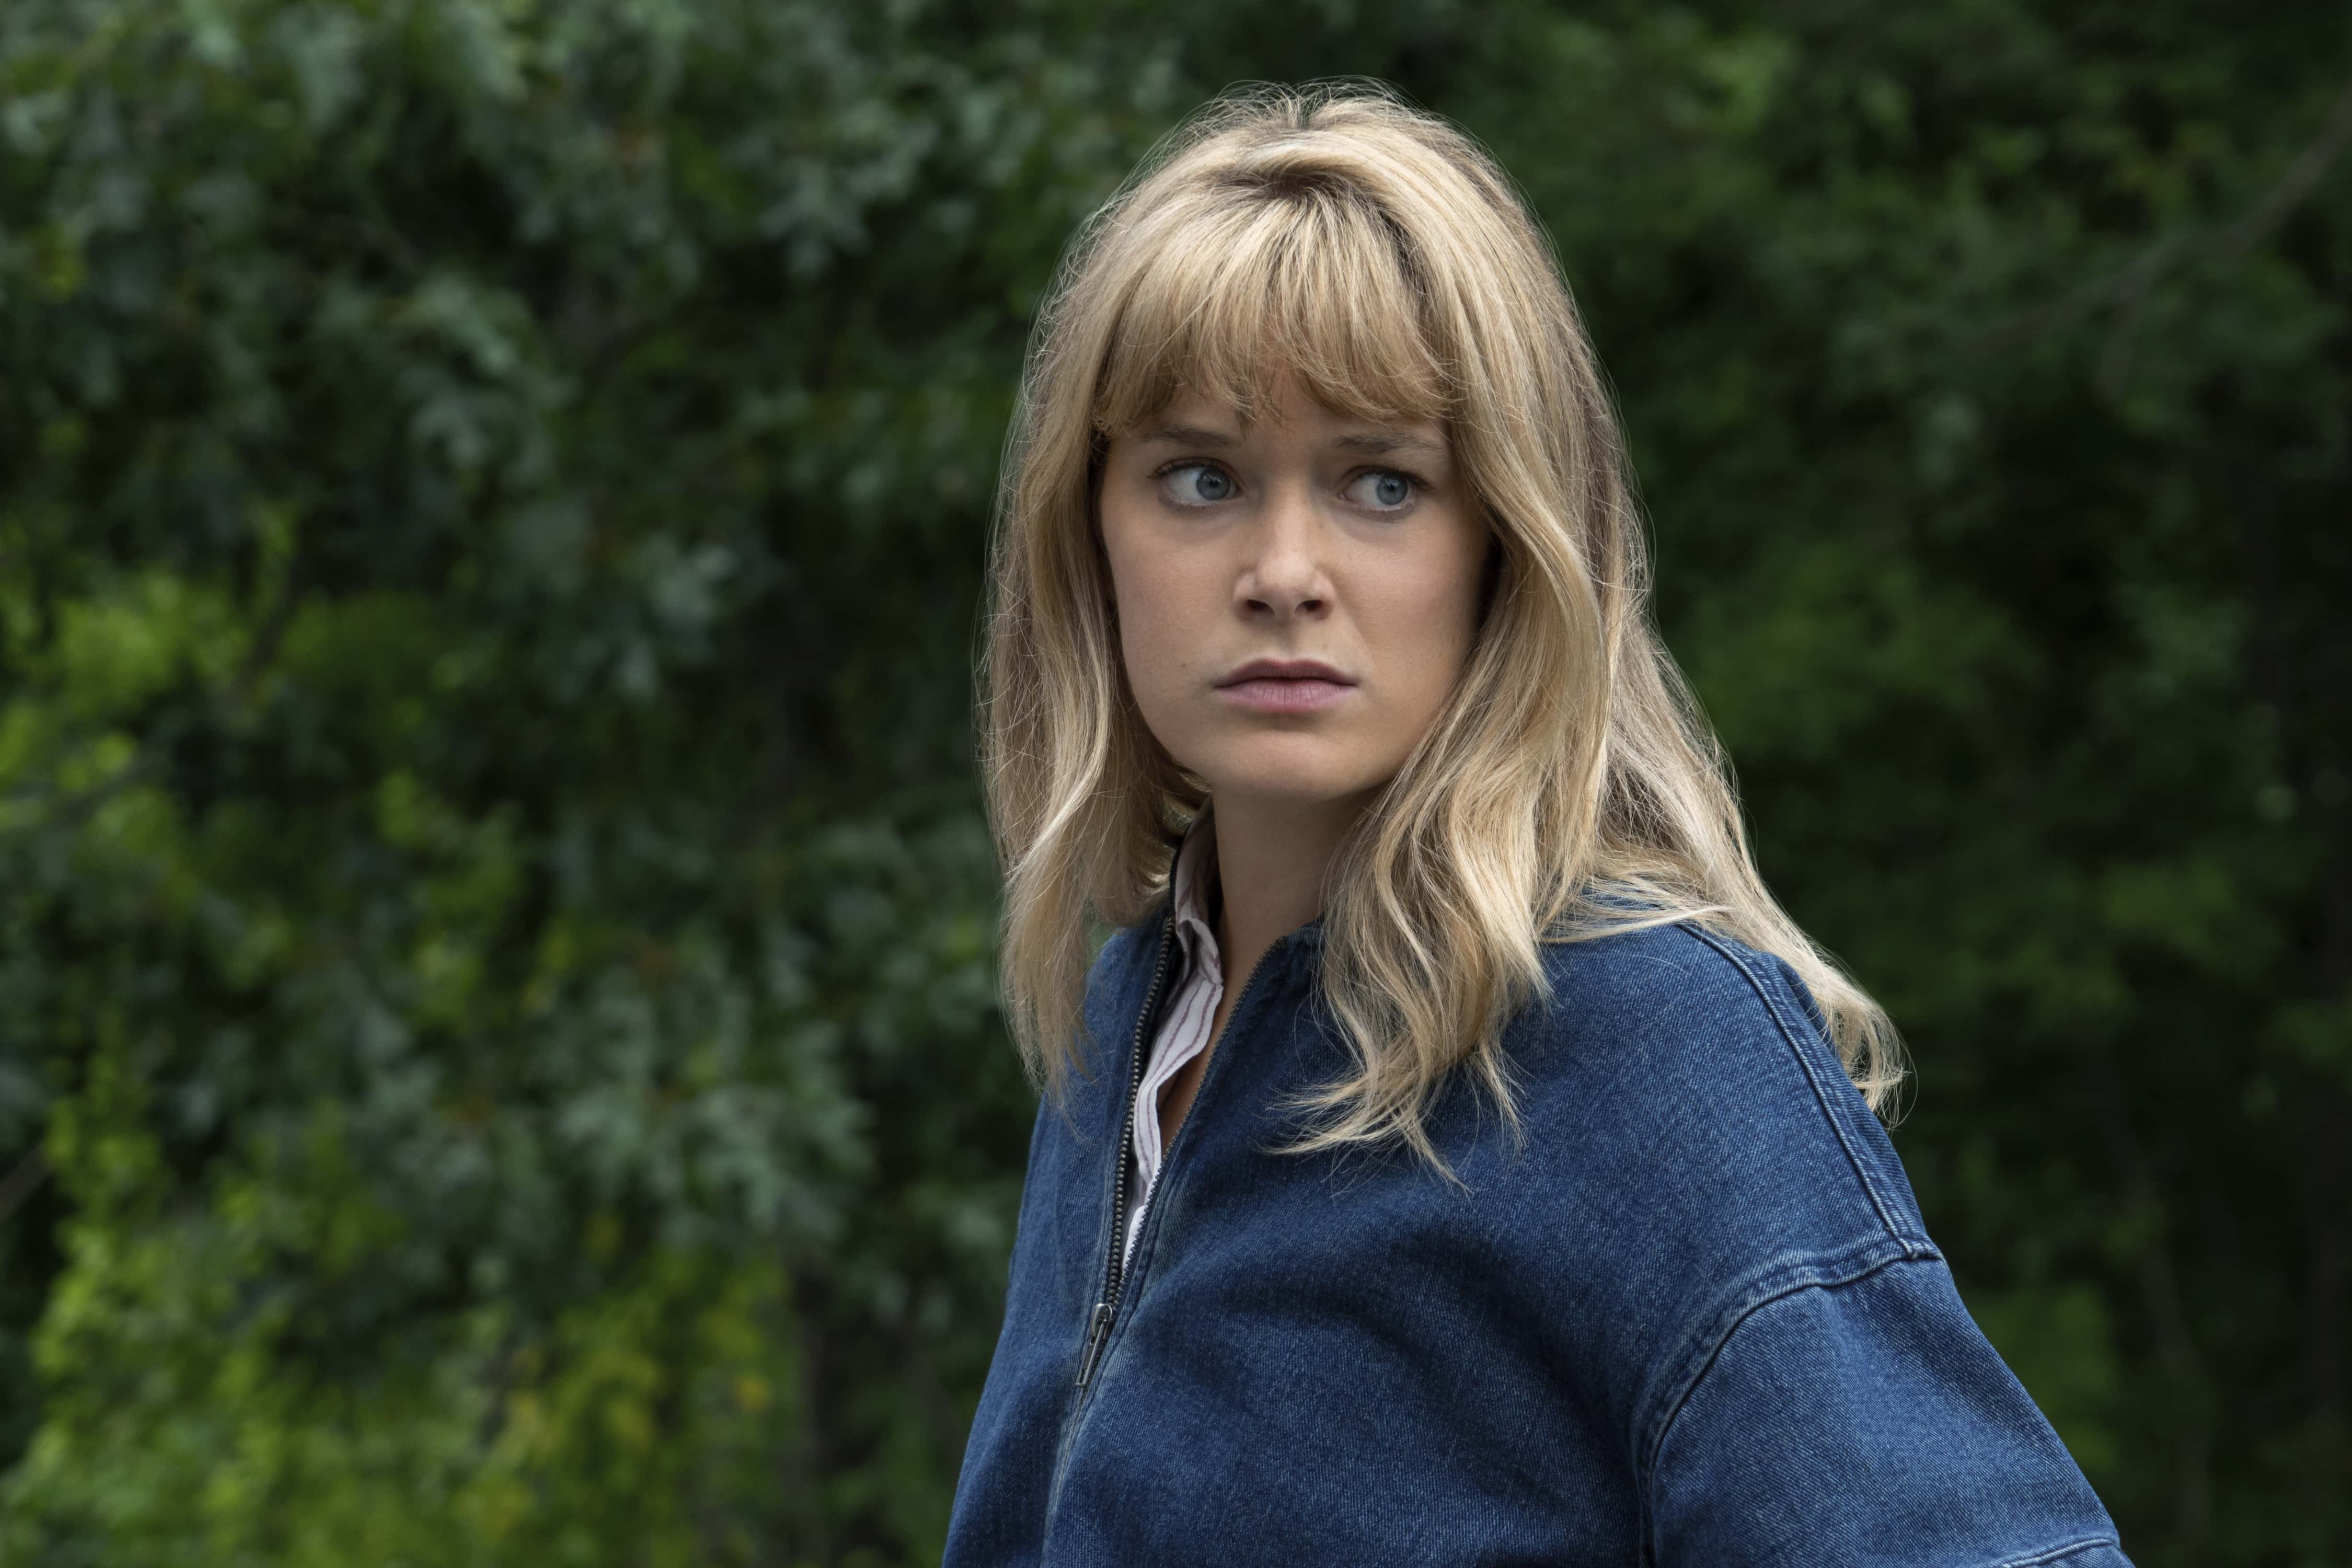 Amy Carlson Bilder the society' season 2: cassandra and allie's mother may be